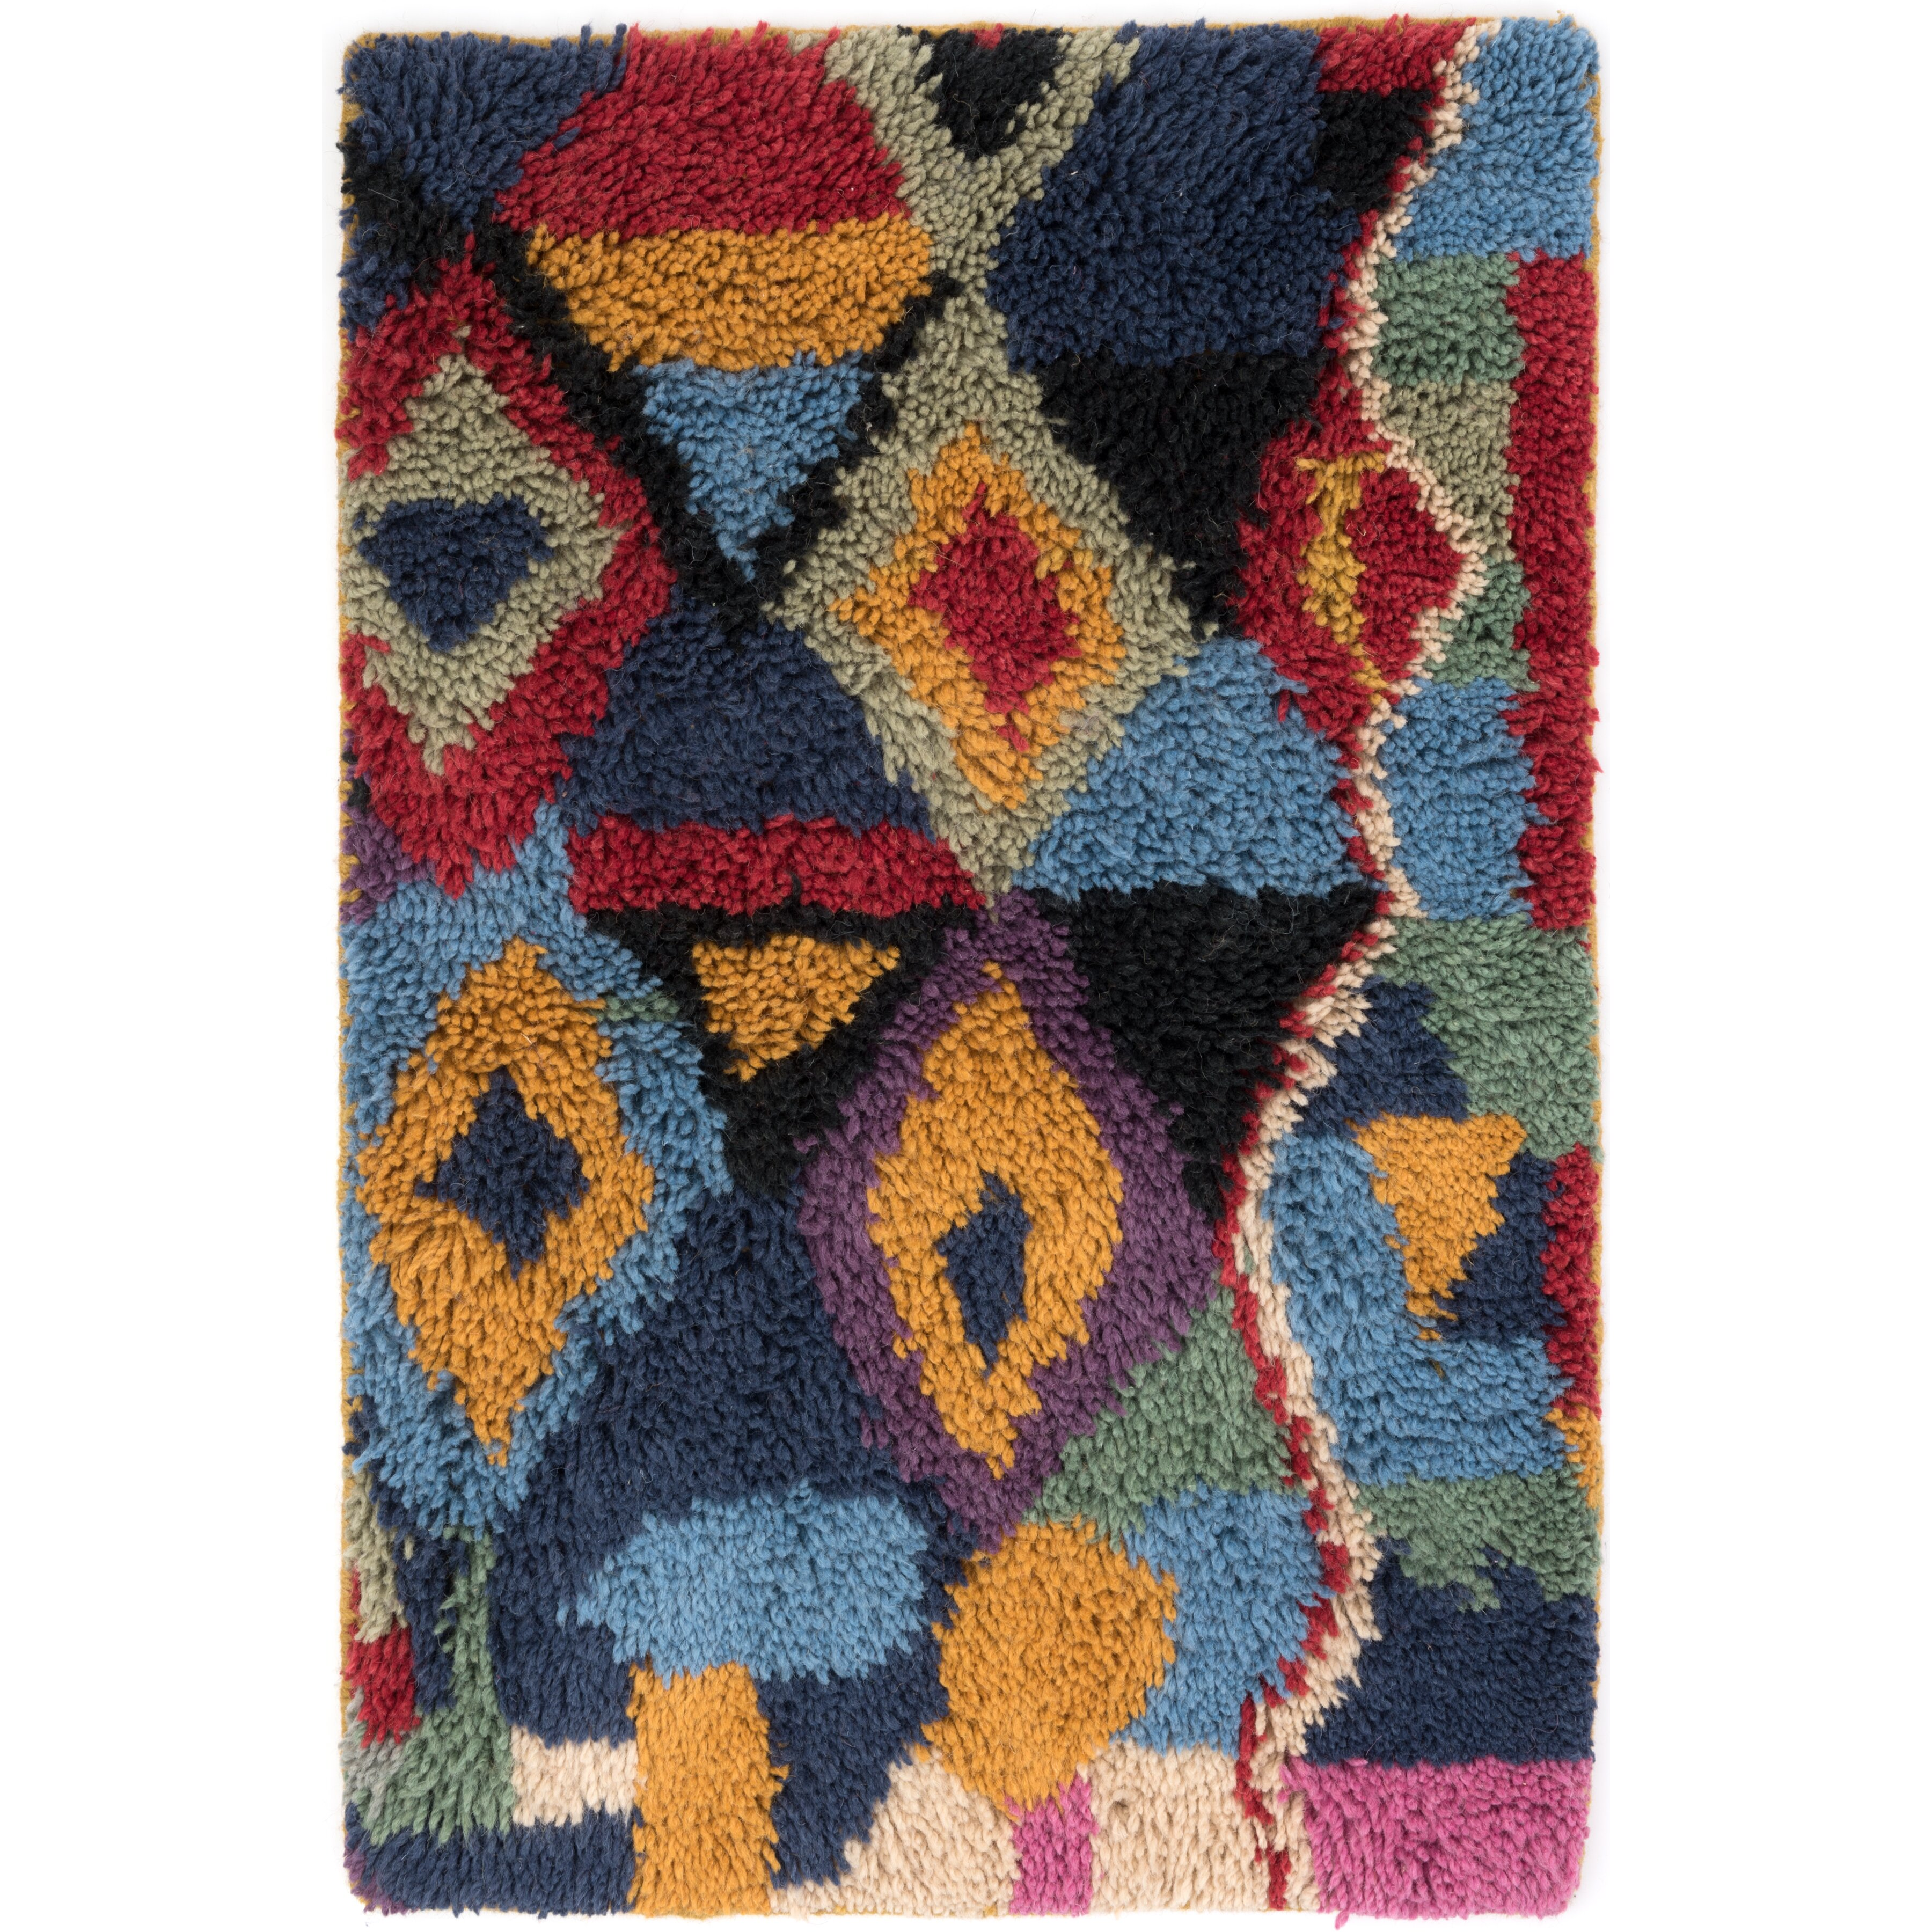 Throw Rugs Secure: Dash And Albert Rugs Hand Knotted Area Rug